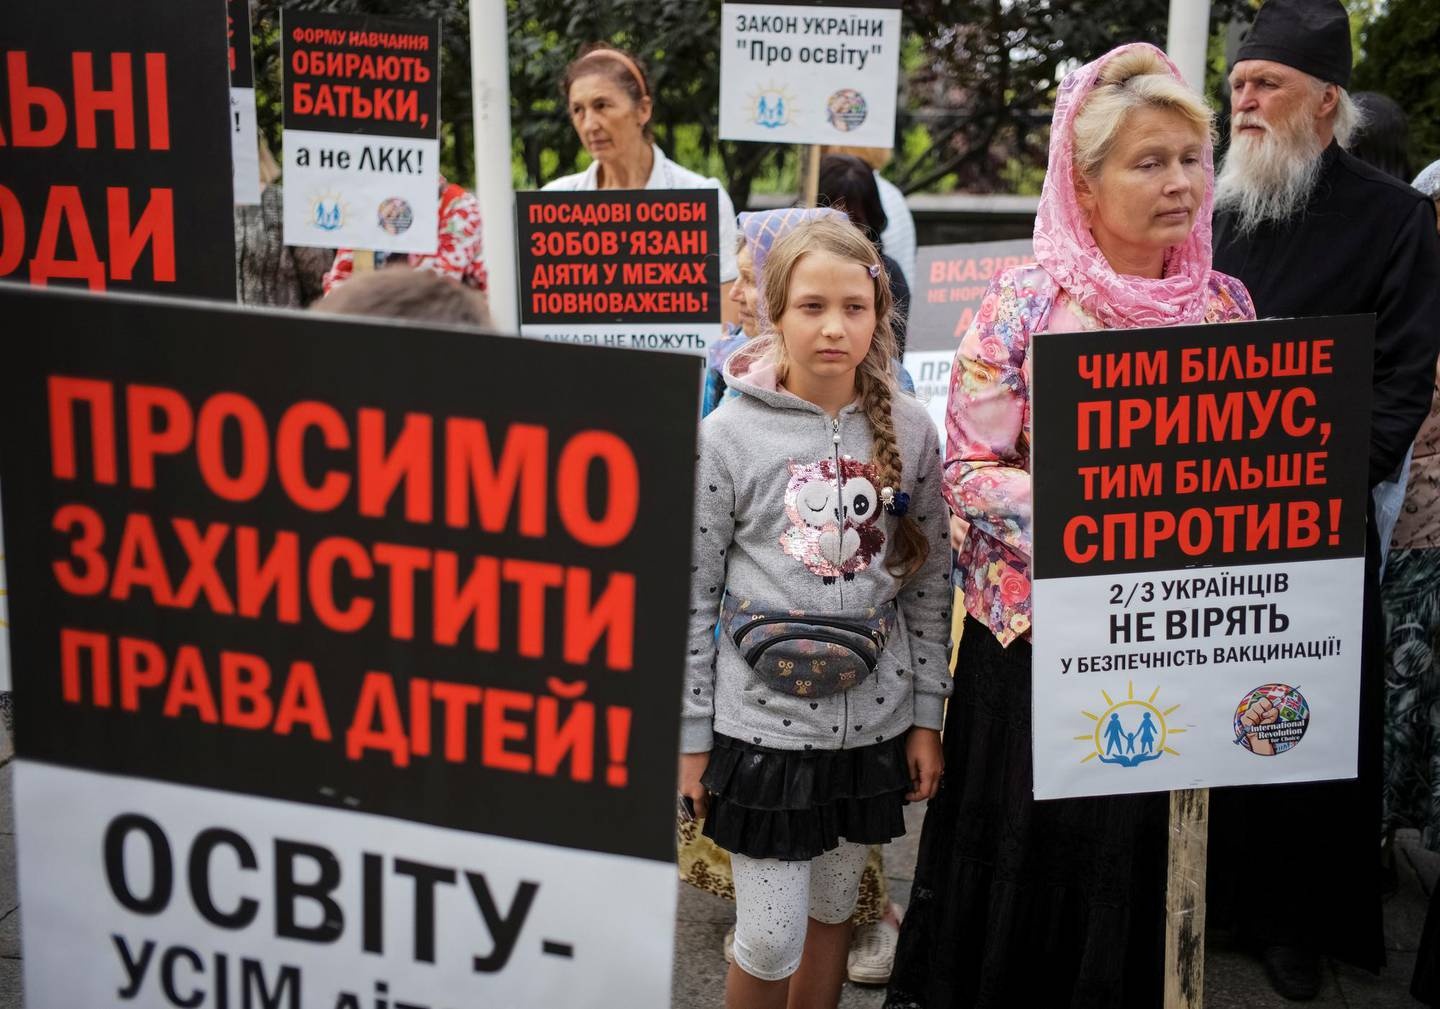 FILE PHOTO: Anti-vaccination activists protest against the decision of the Health Ministry and Education Ministry to not allow children without vaccination to go to kindergarten and school, next to the Presidential Administration building in Kiev, Ukraine August 22, 2019.  Picture taken August 22, 2019.  REUTERS/Gleb Garanich/File Photo